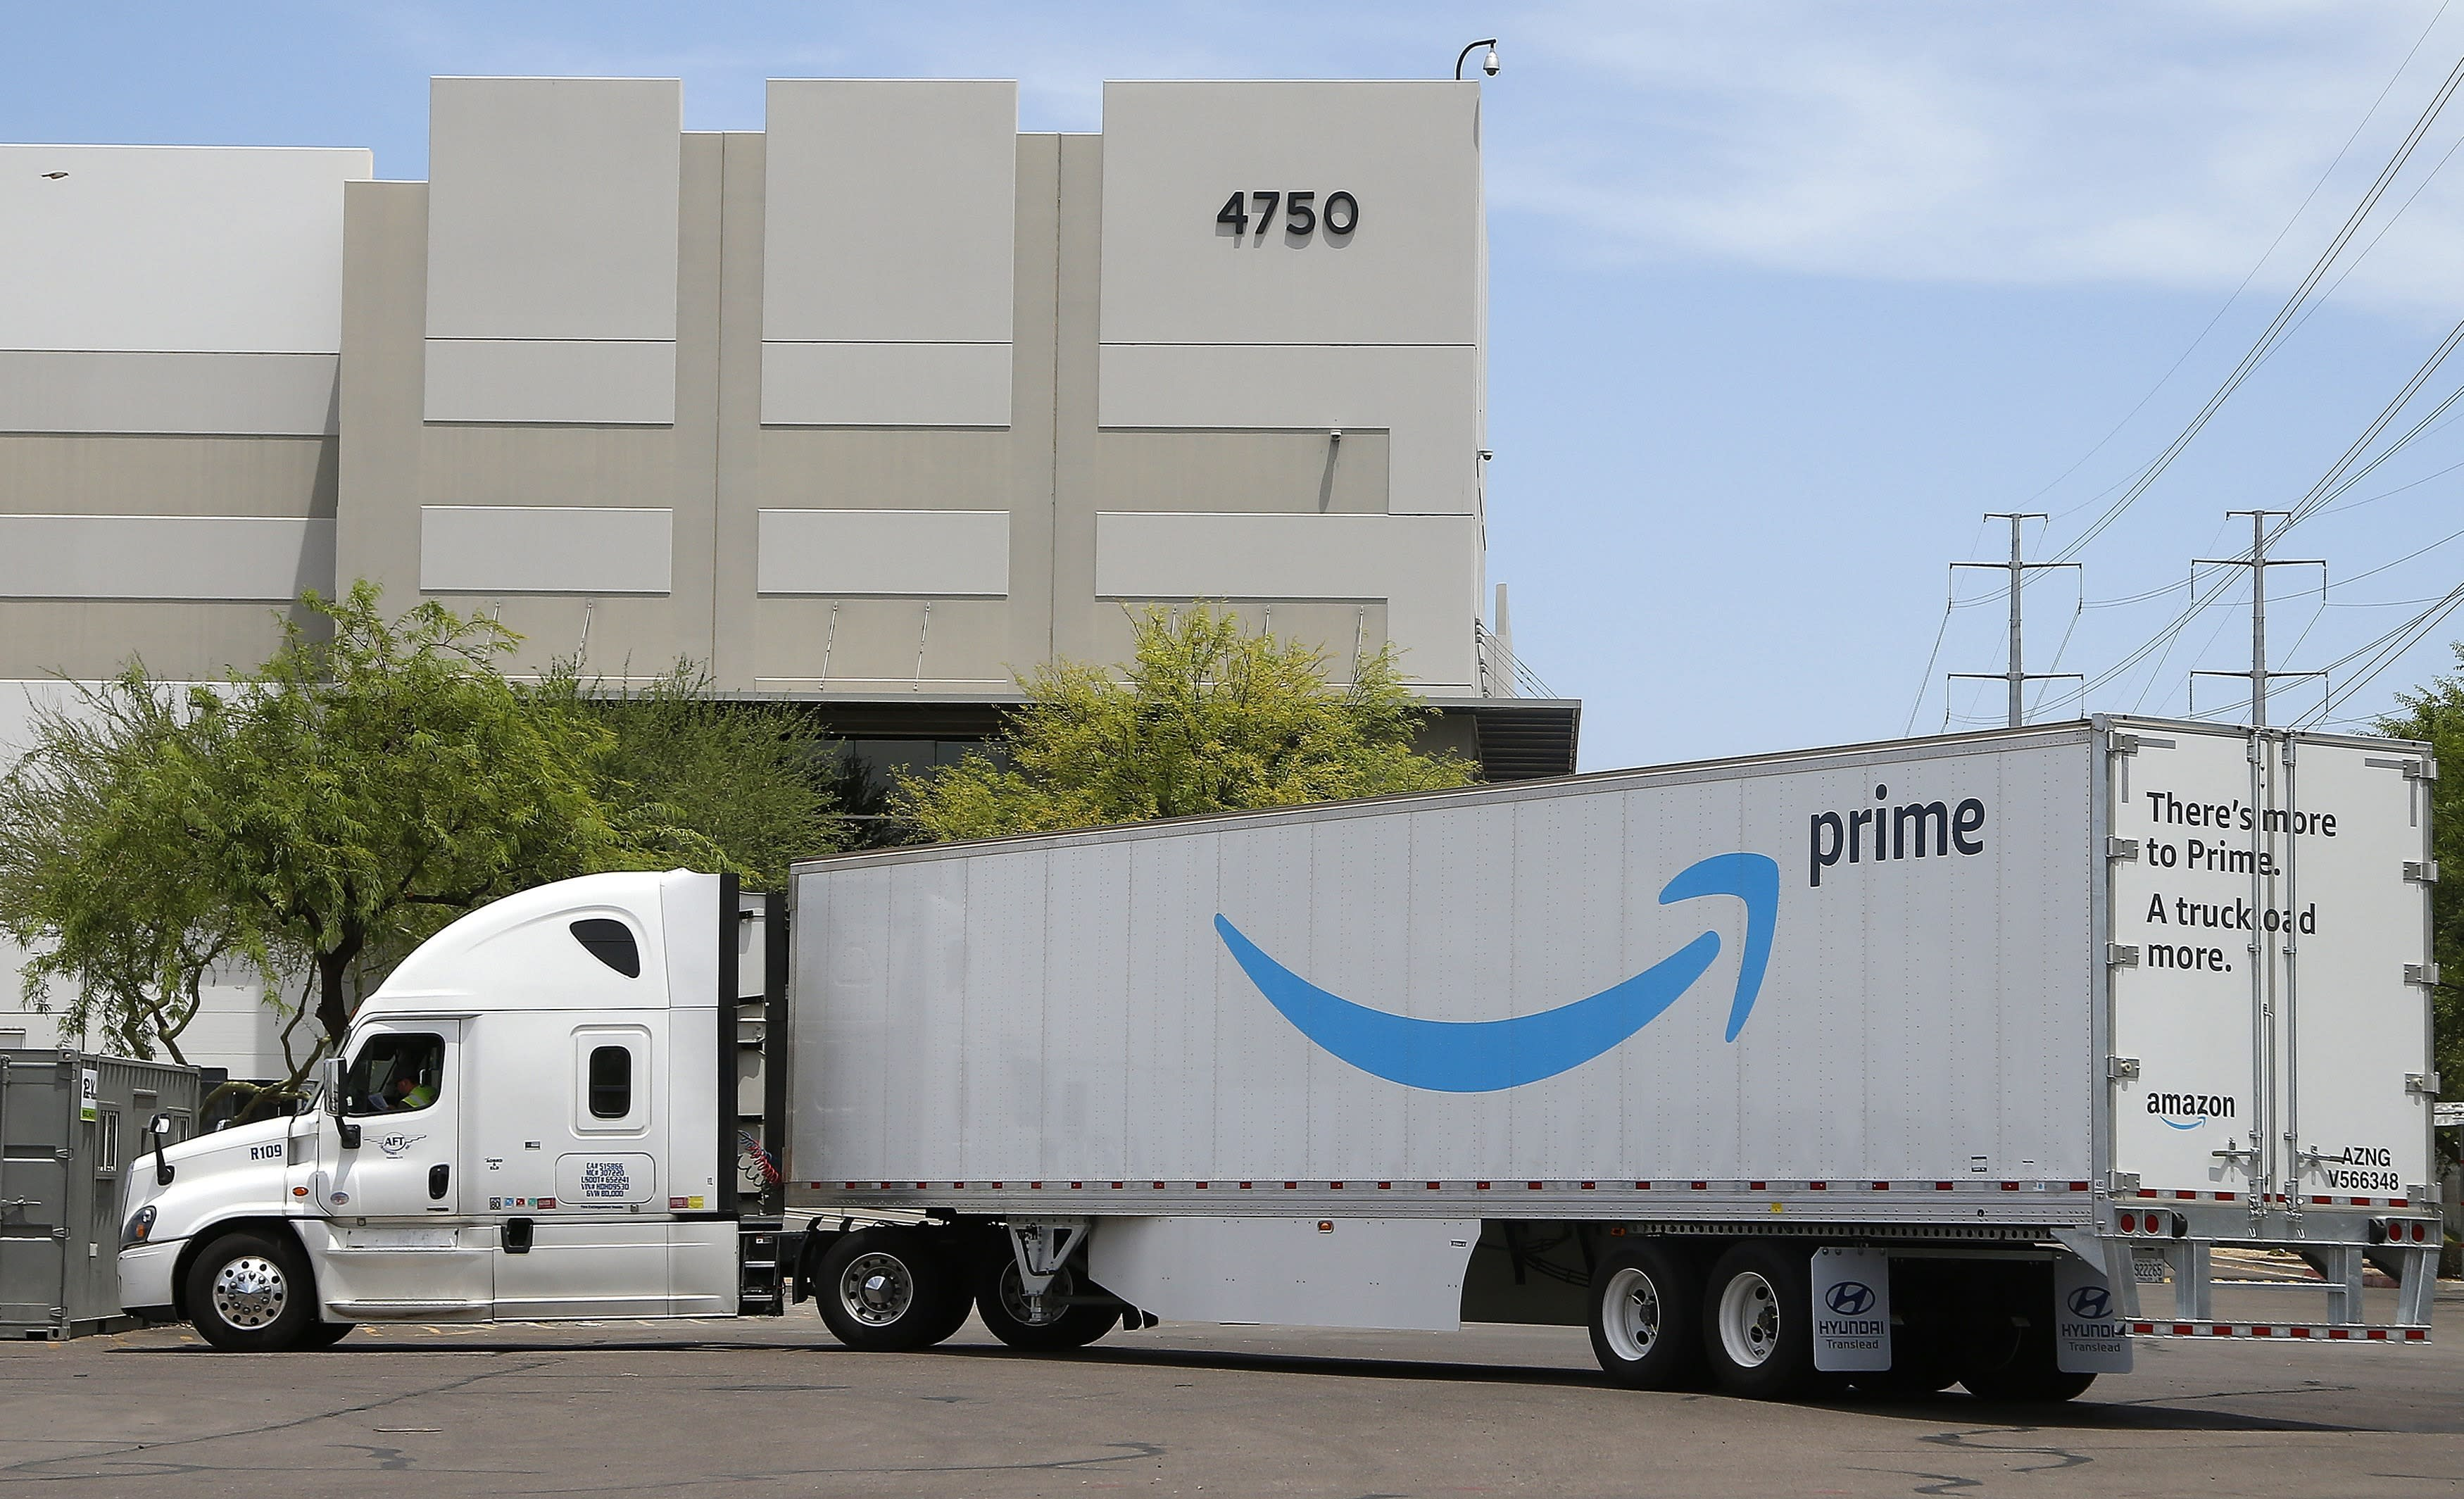 Amazon's spending on quick delivery is squeezing its profits